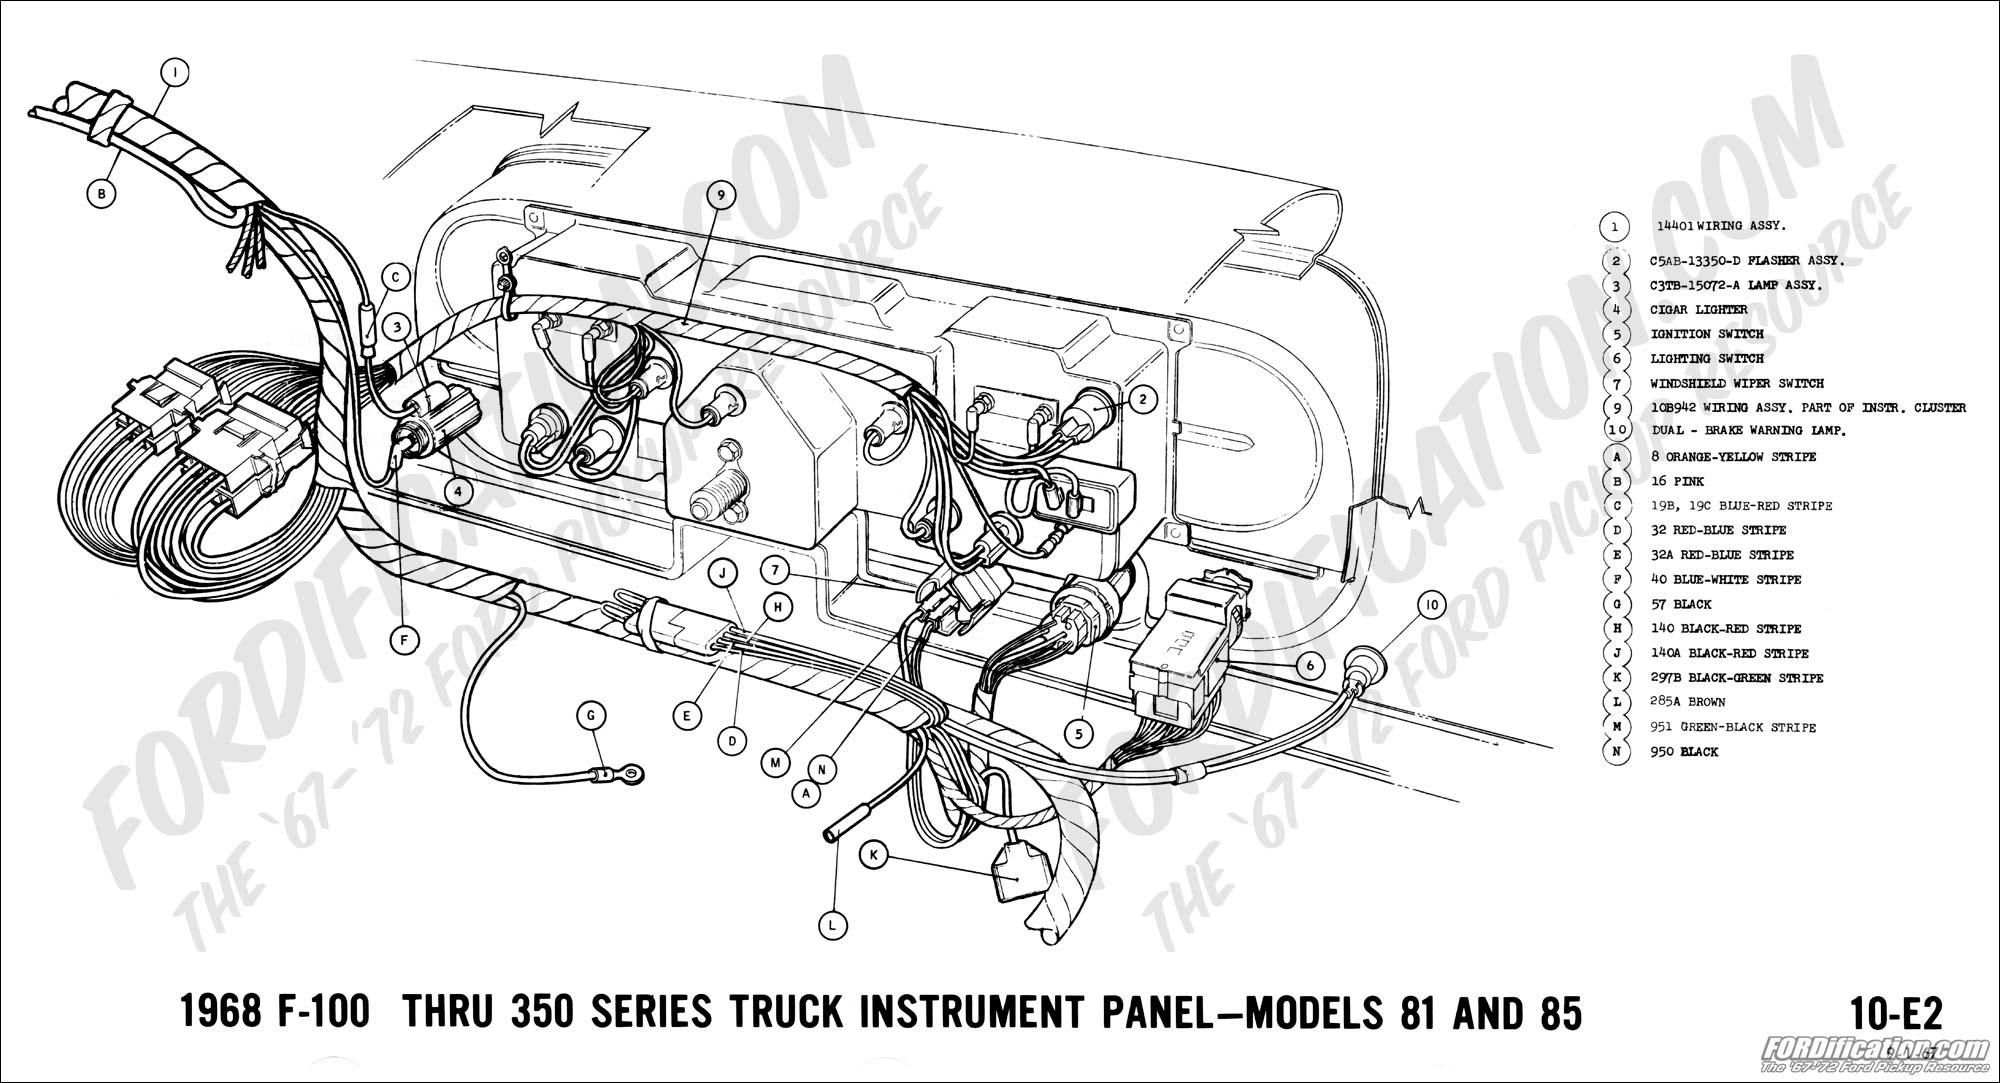 1956 Ford F100 Dash Gauges Wiring Diagram All About Best Secret Nova Turn Signal Switch Free Download Library Rh 25 Webseiten Archiv De